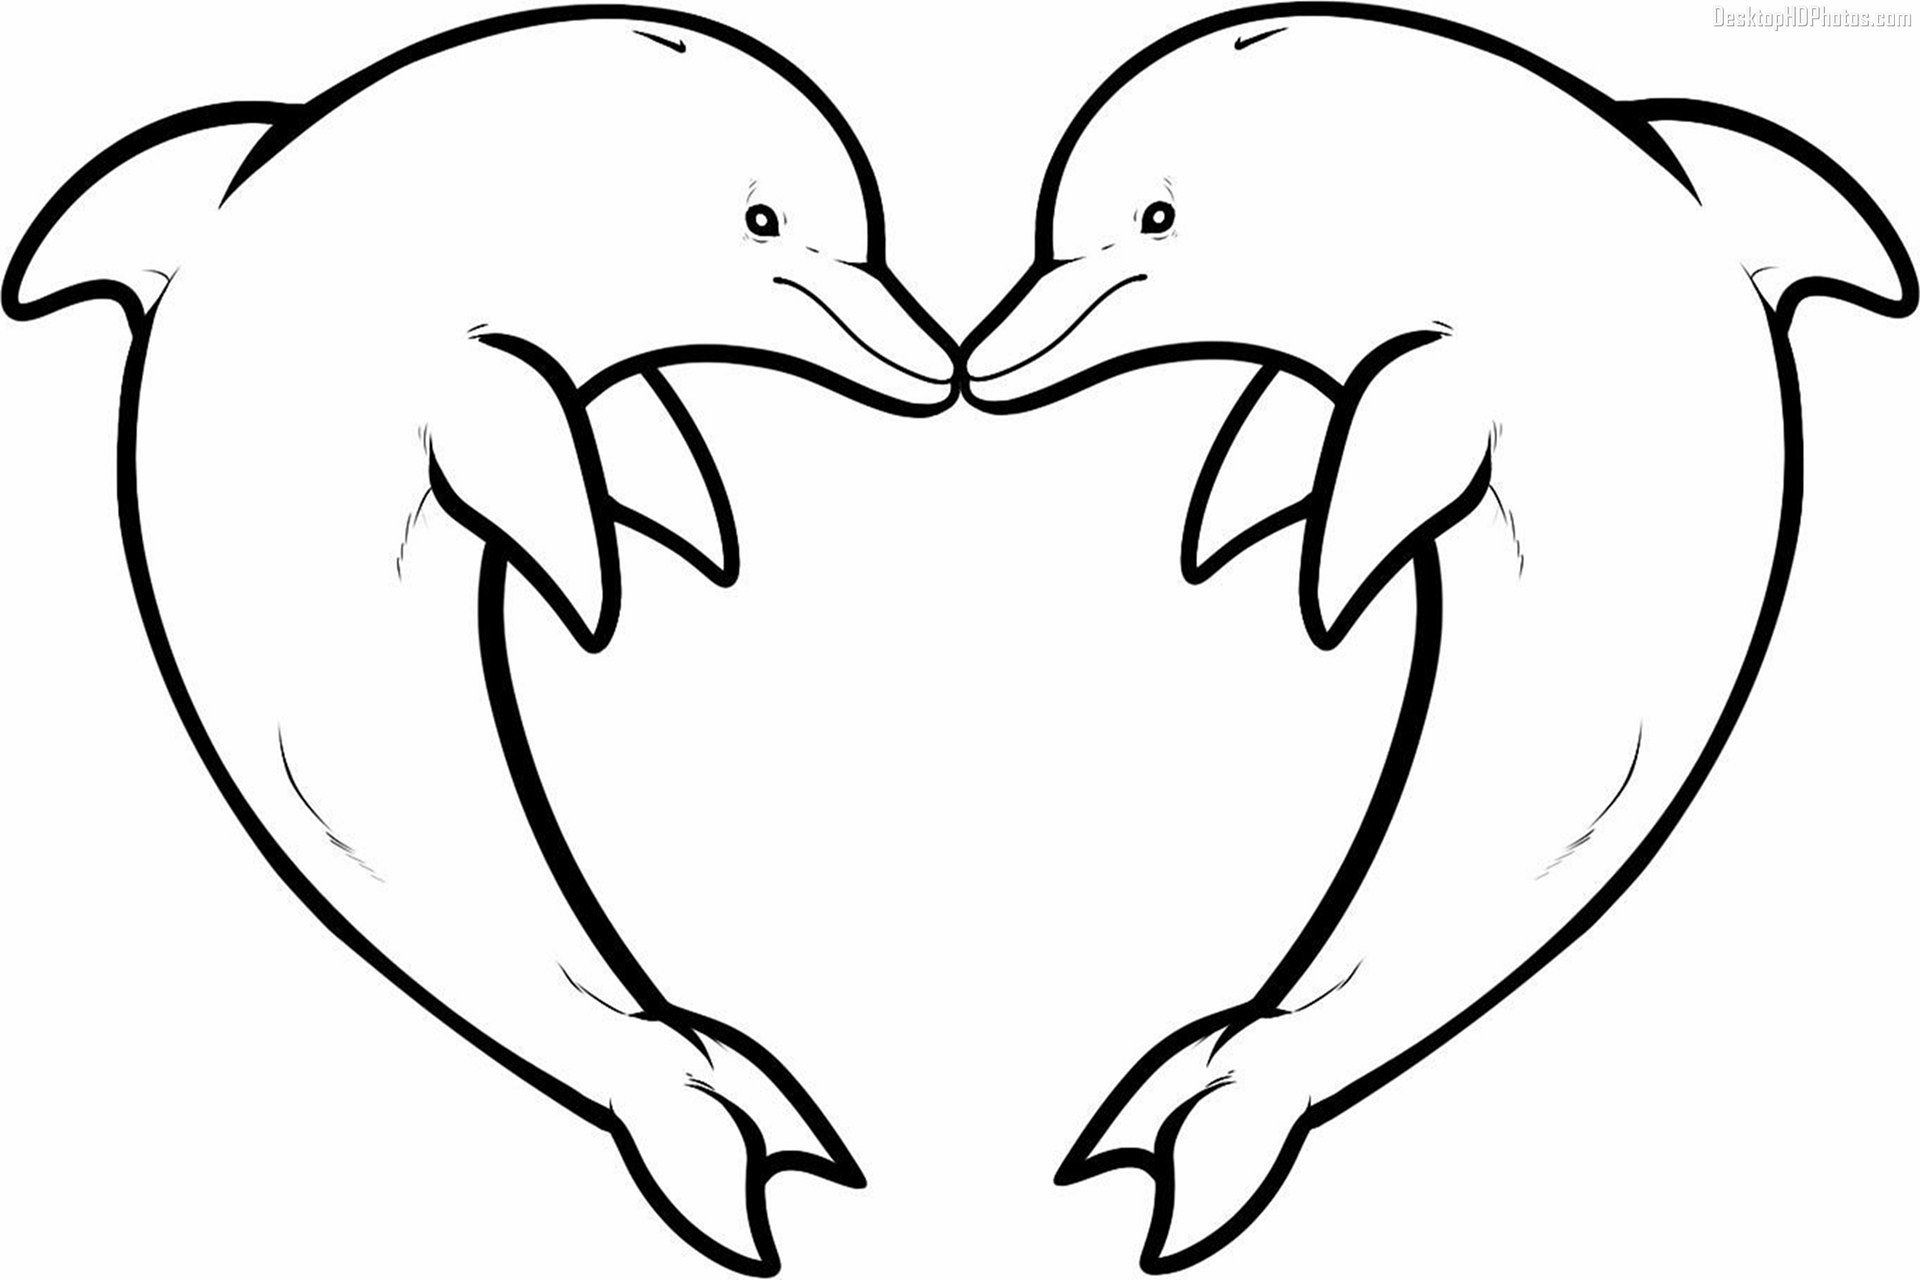 Learn How To Draw A Dolphin With This Simple Easy And Fun And Step